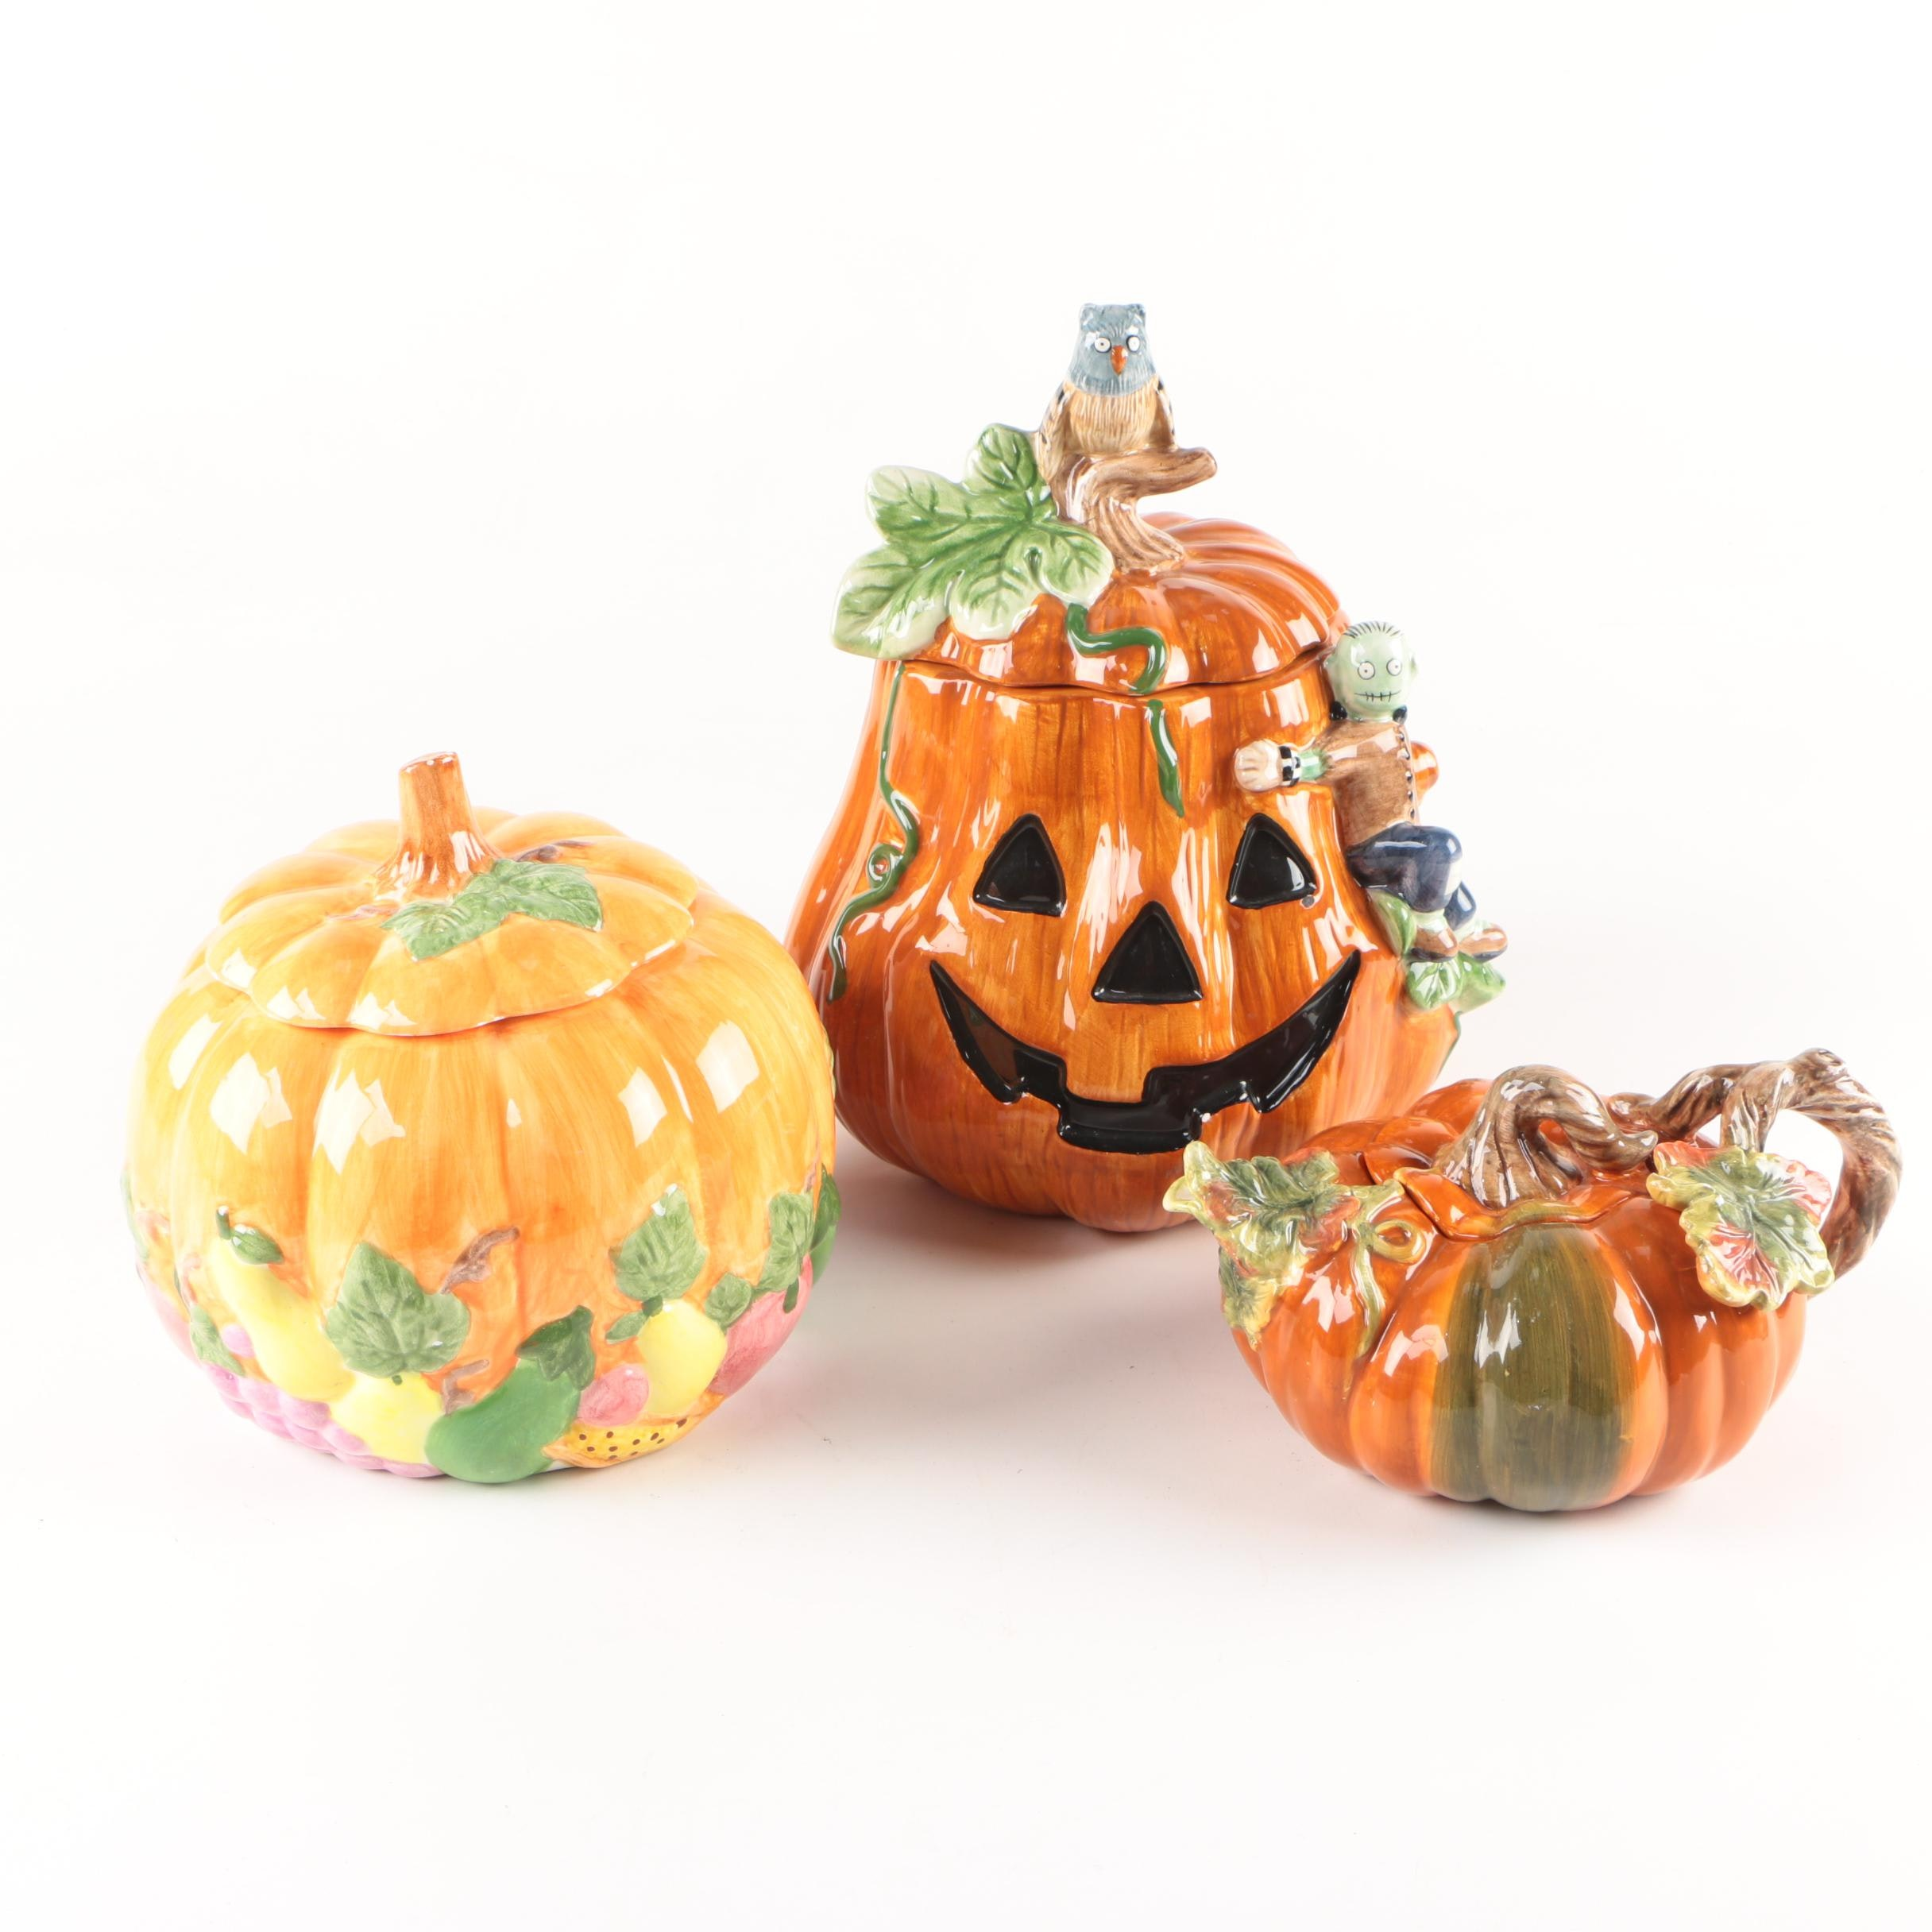 Ceramic Pumpkin Shaped Containers and Teapot Featuring Sakura and Russ